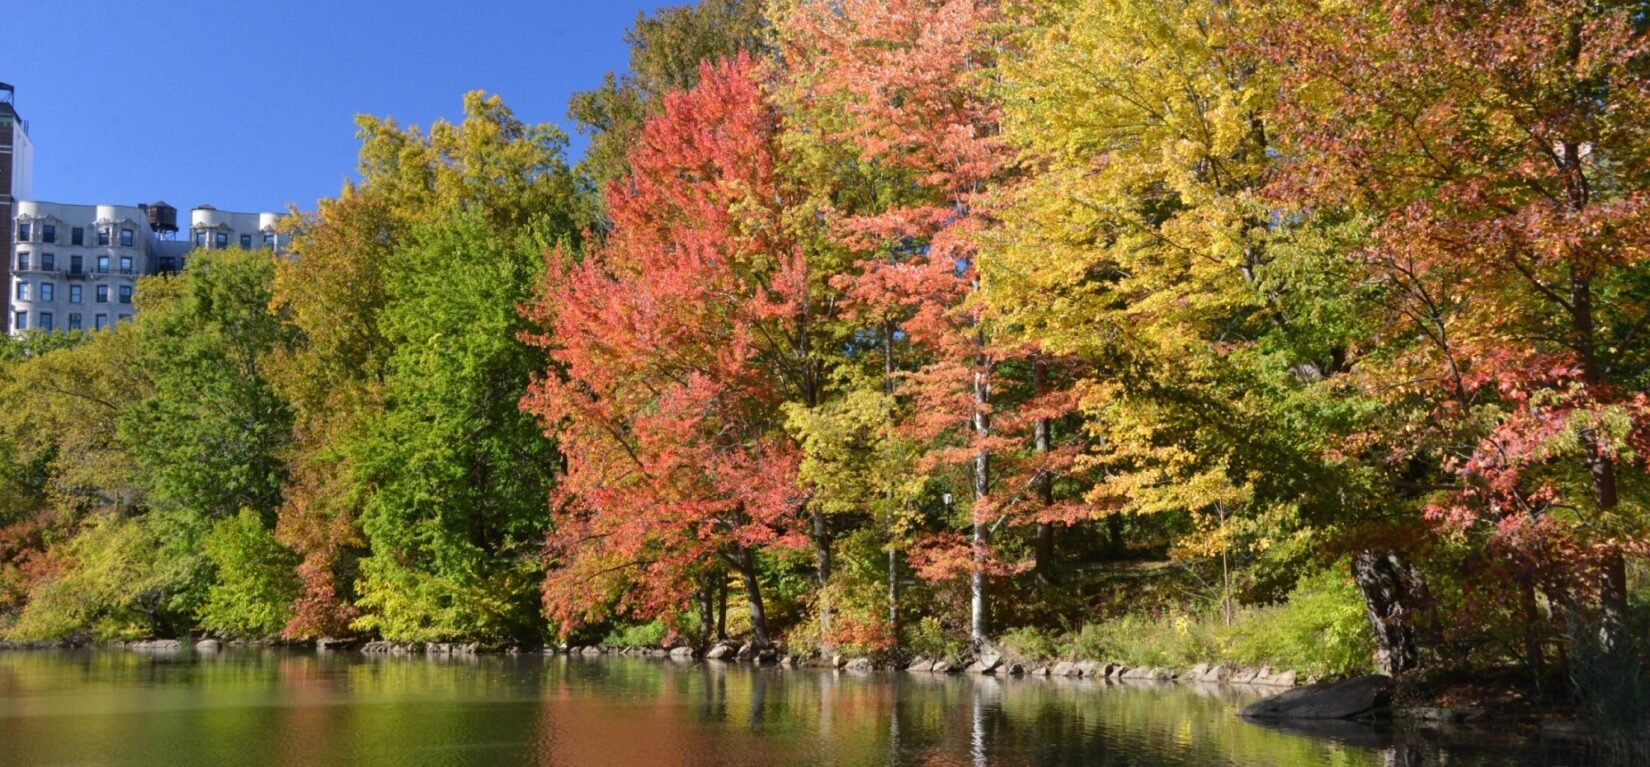 Trees in autumn colors line the bank of the Pool.